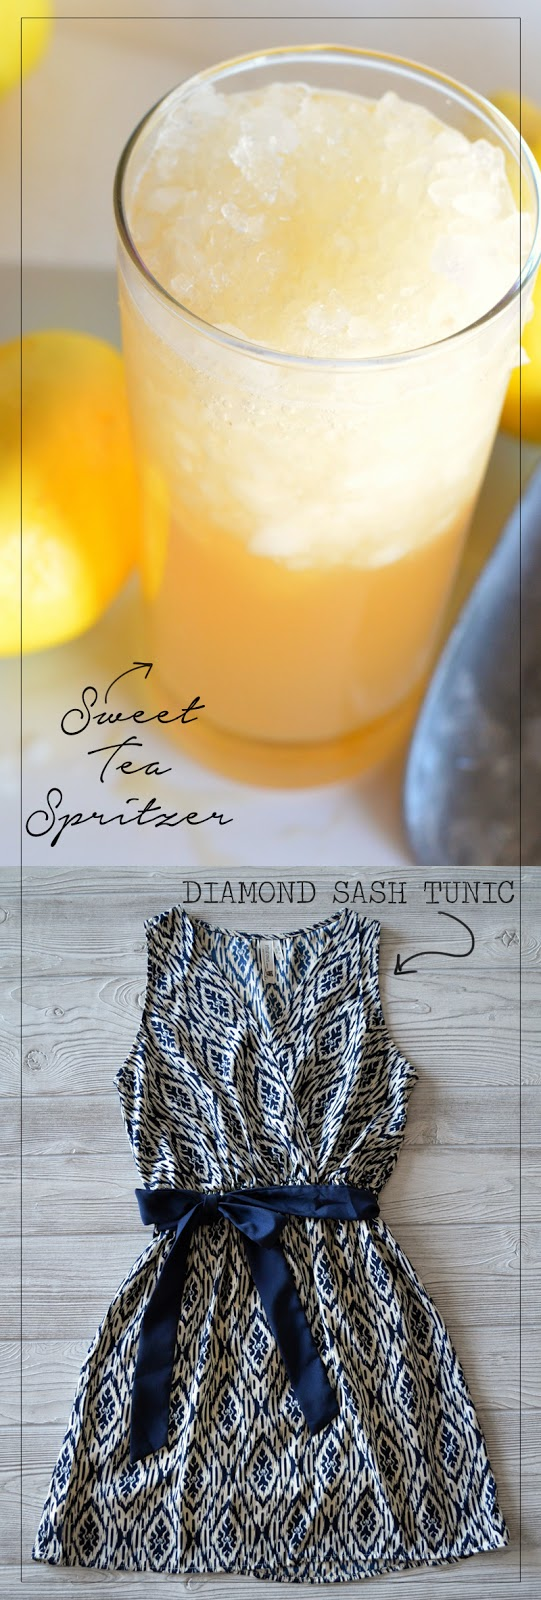 Sweet Tea Spritzer via anightowlblog.com